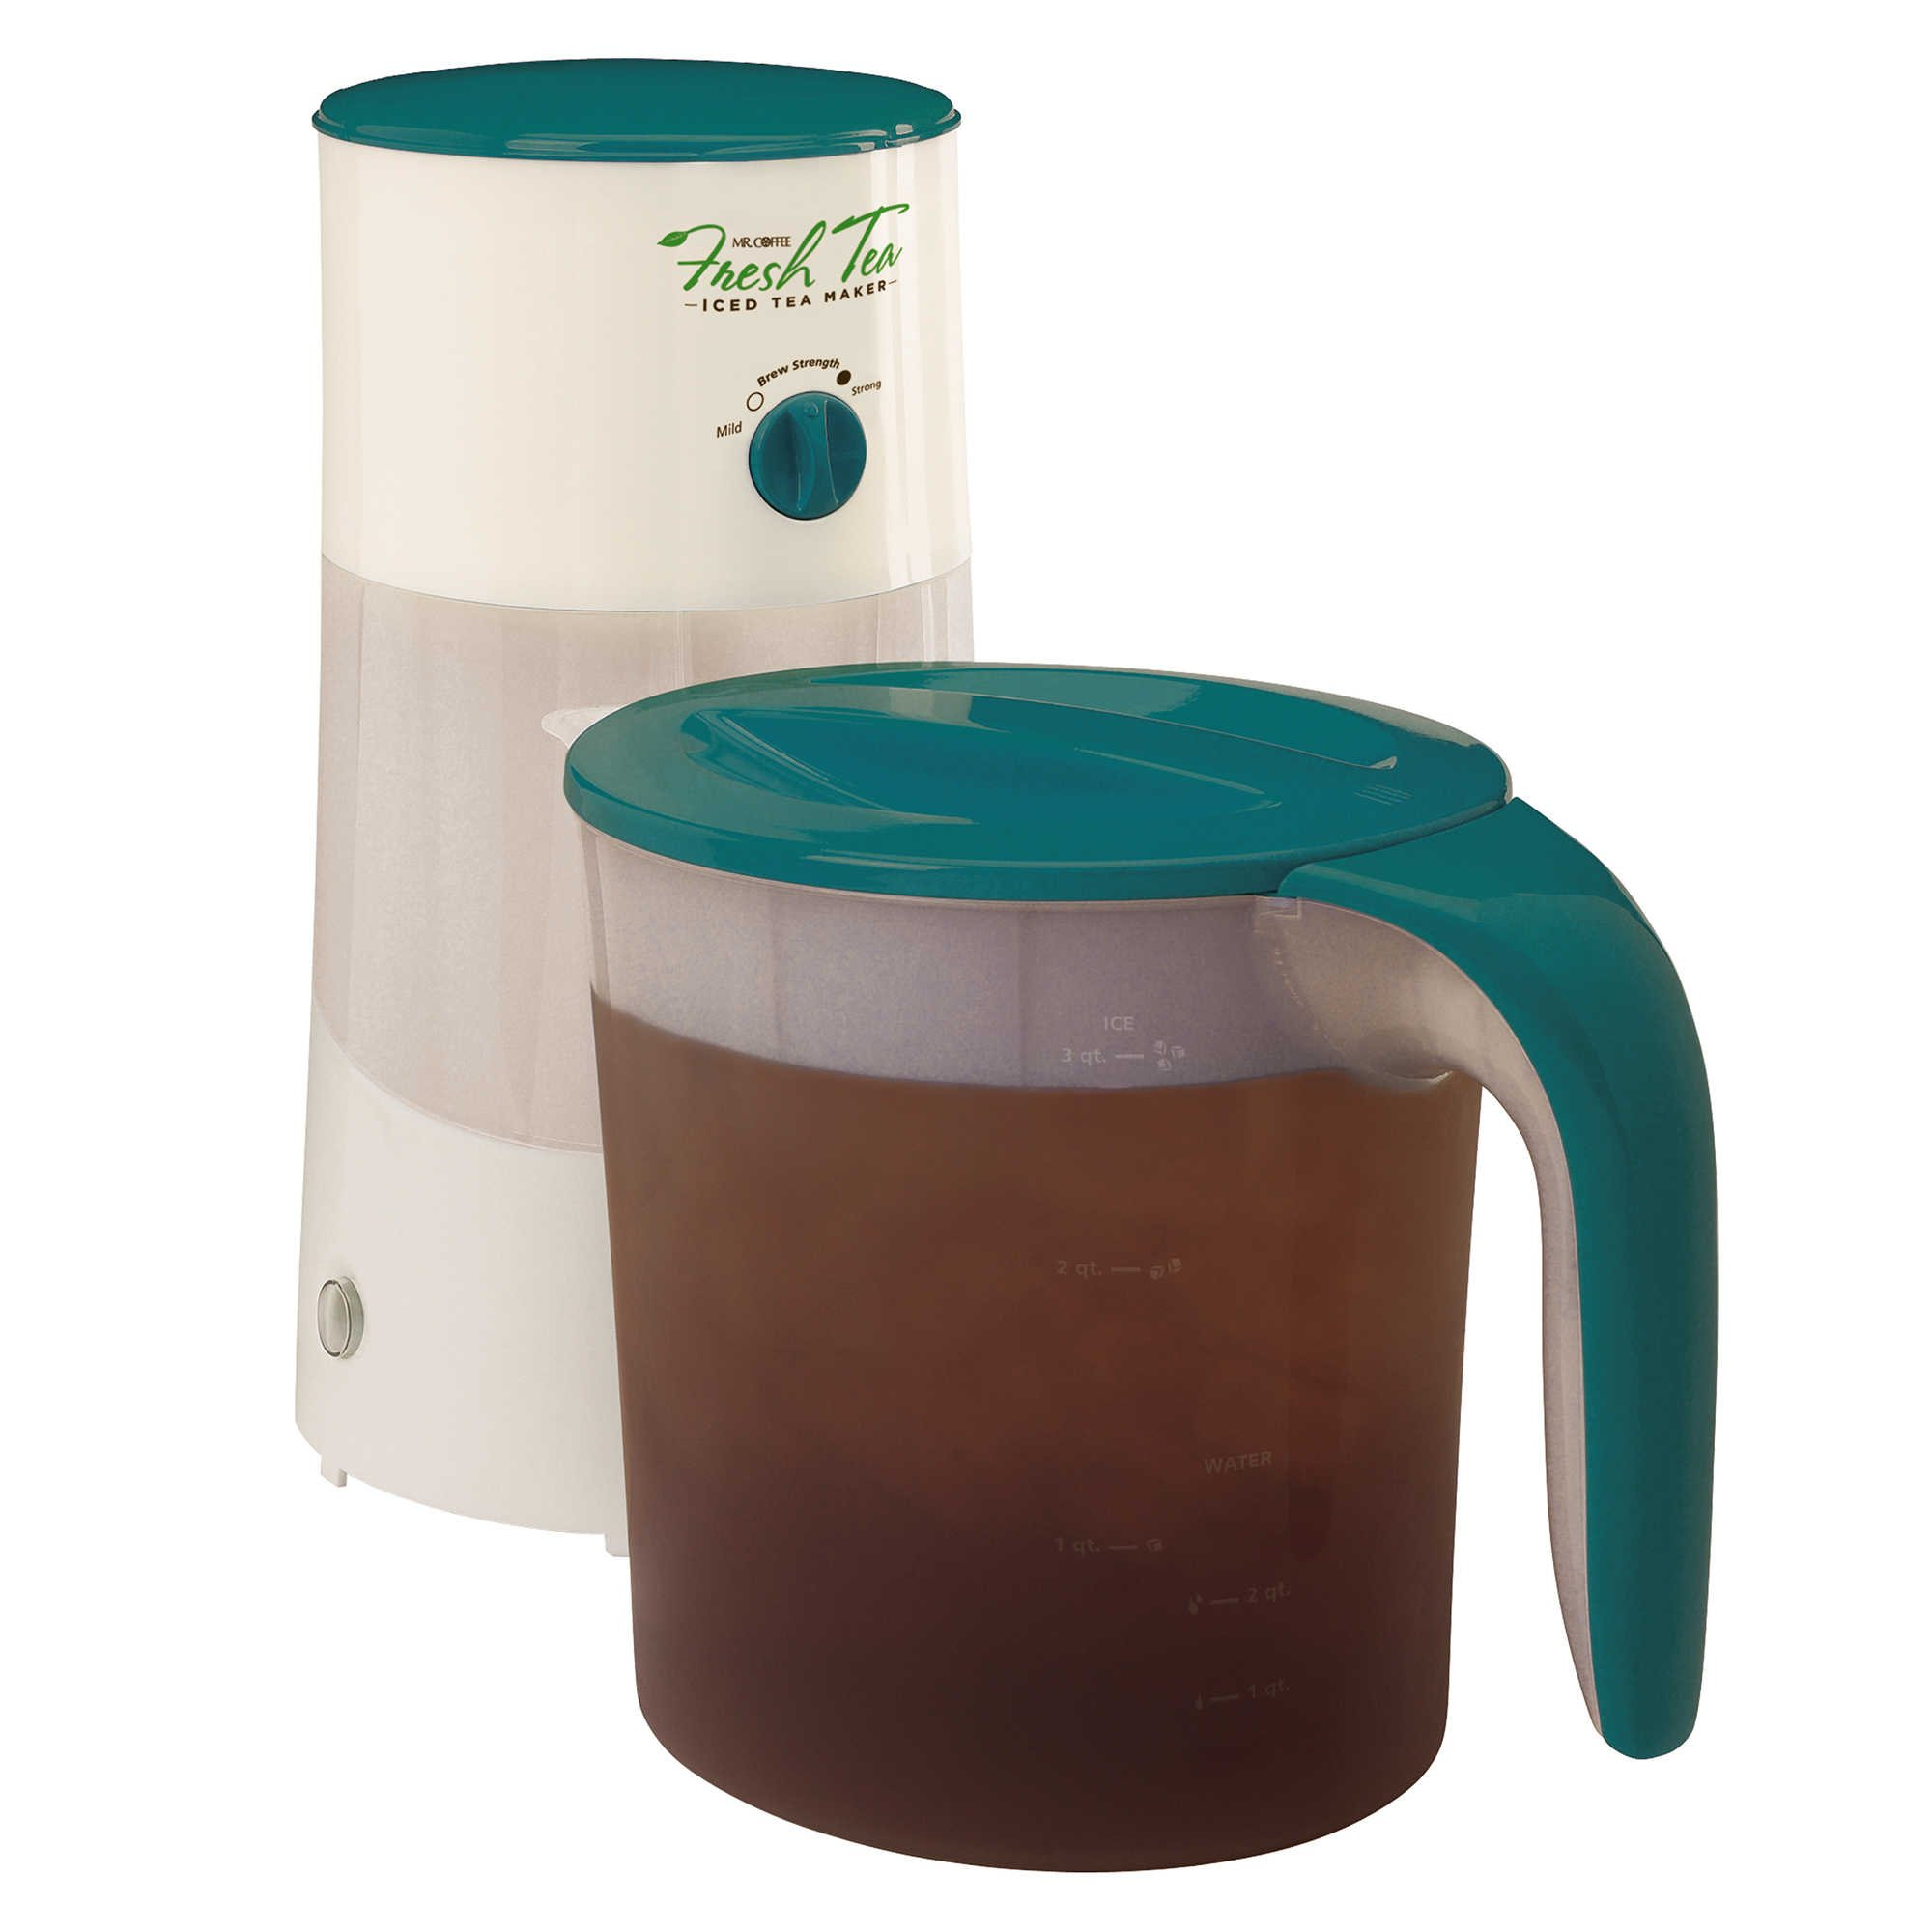 Mr. Coffee 3-Quart Iced Tea Maker by Mr. Coffee